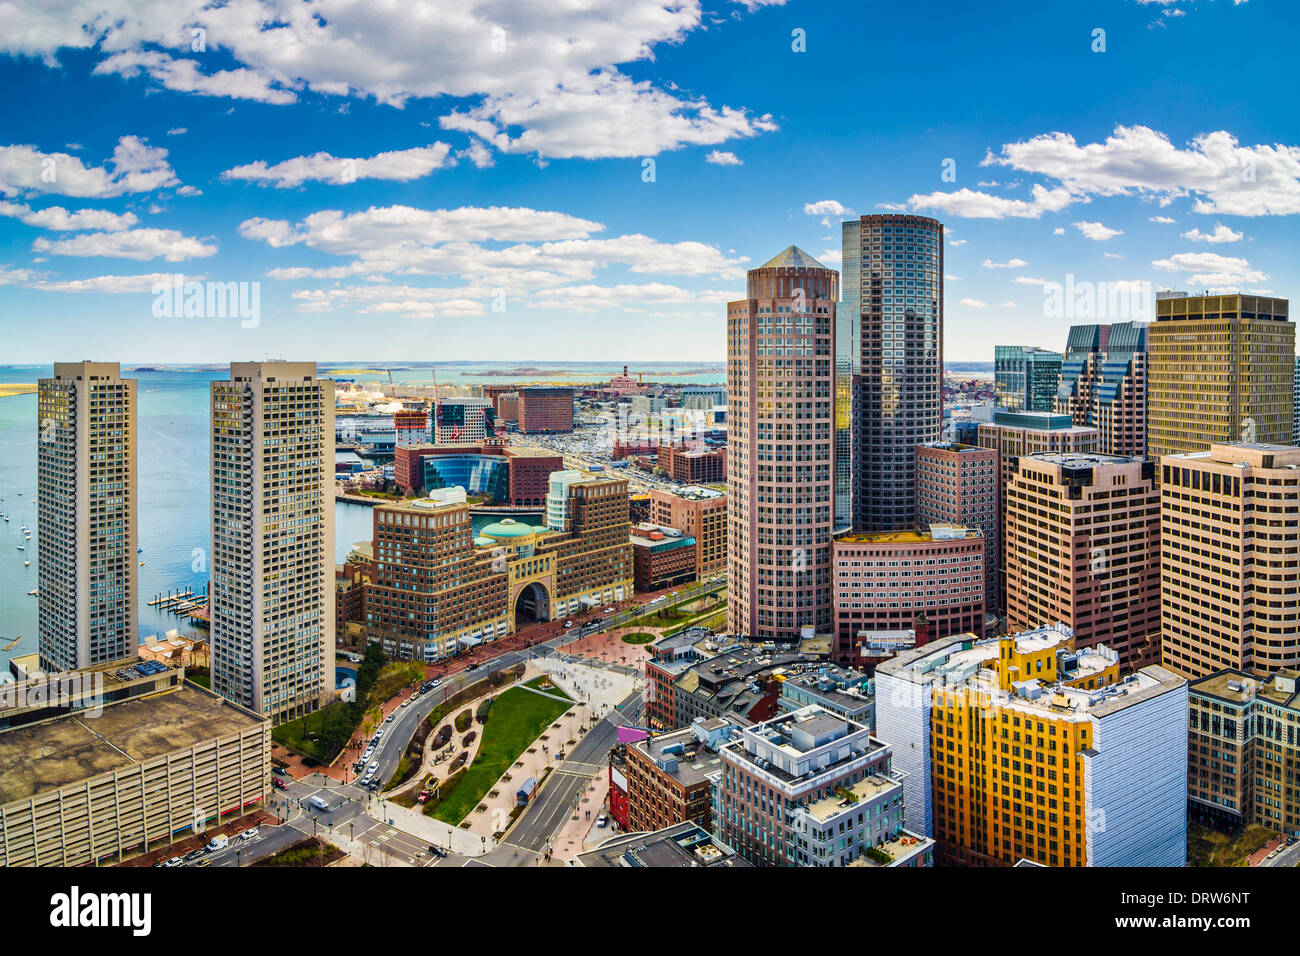 Boston, Massachusetts Luftbild und skyline Stockbild